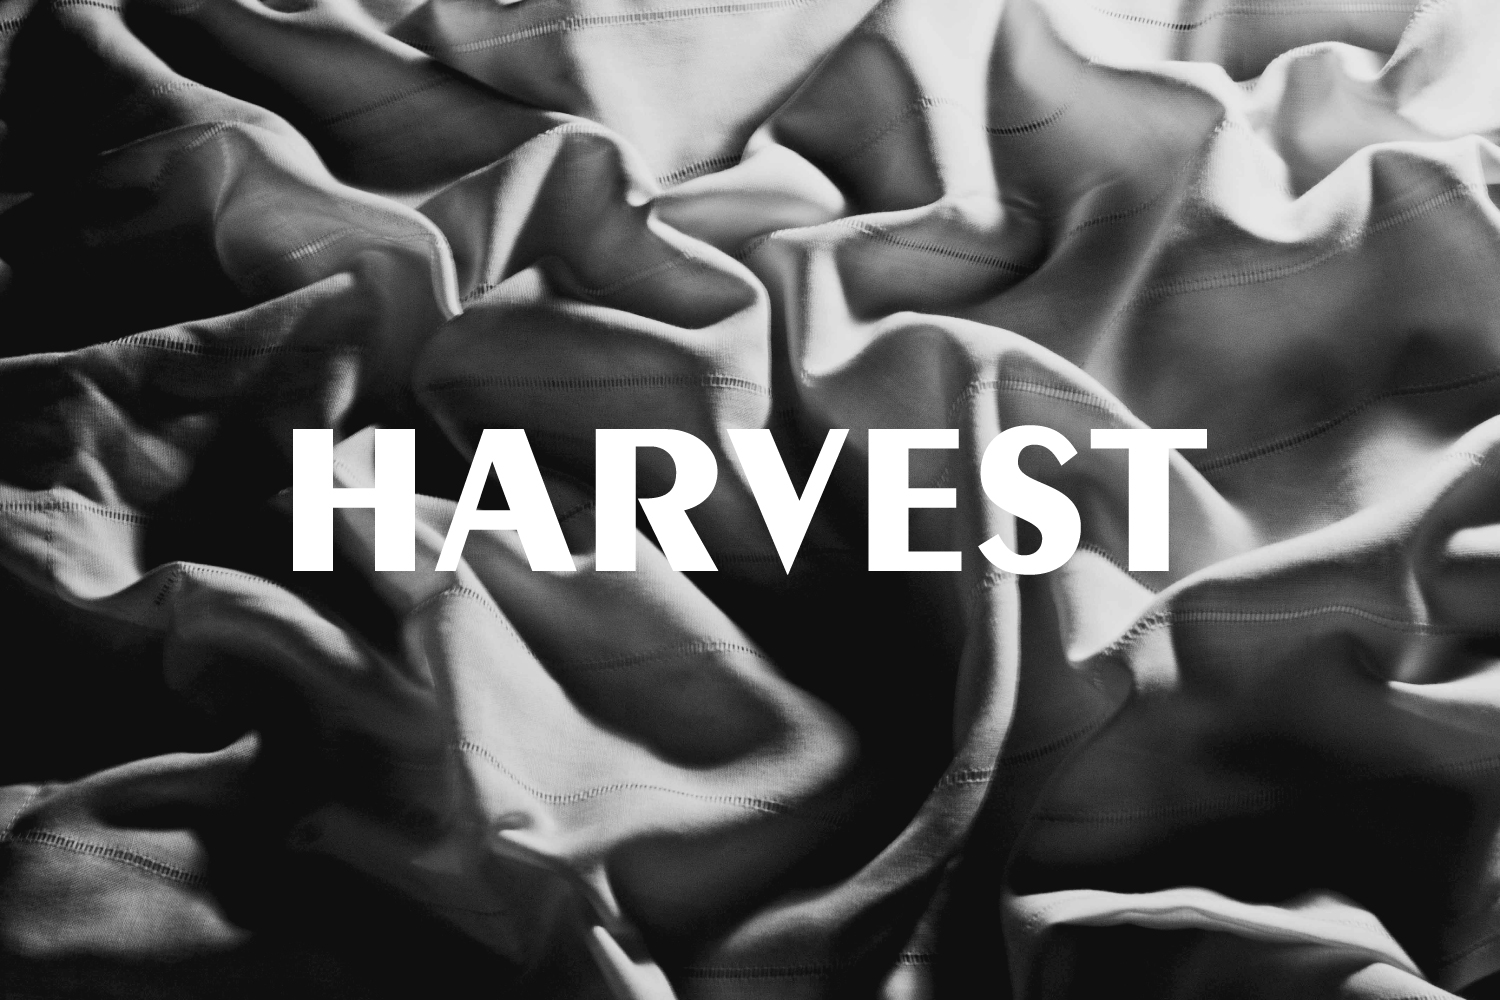 Harvest dinner event design.